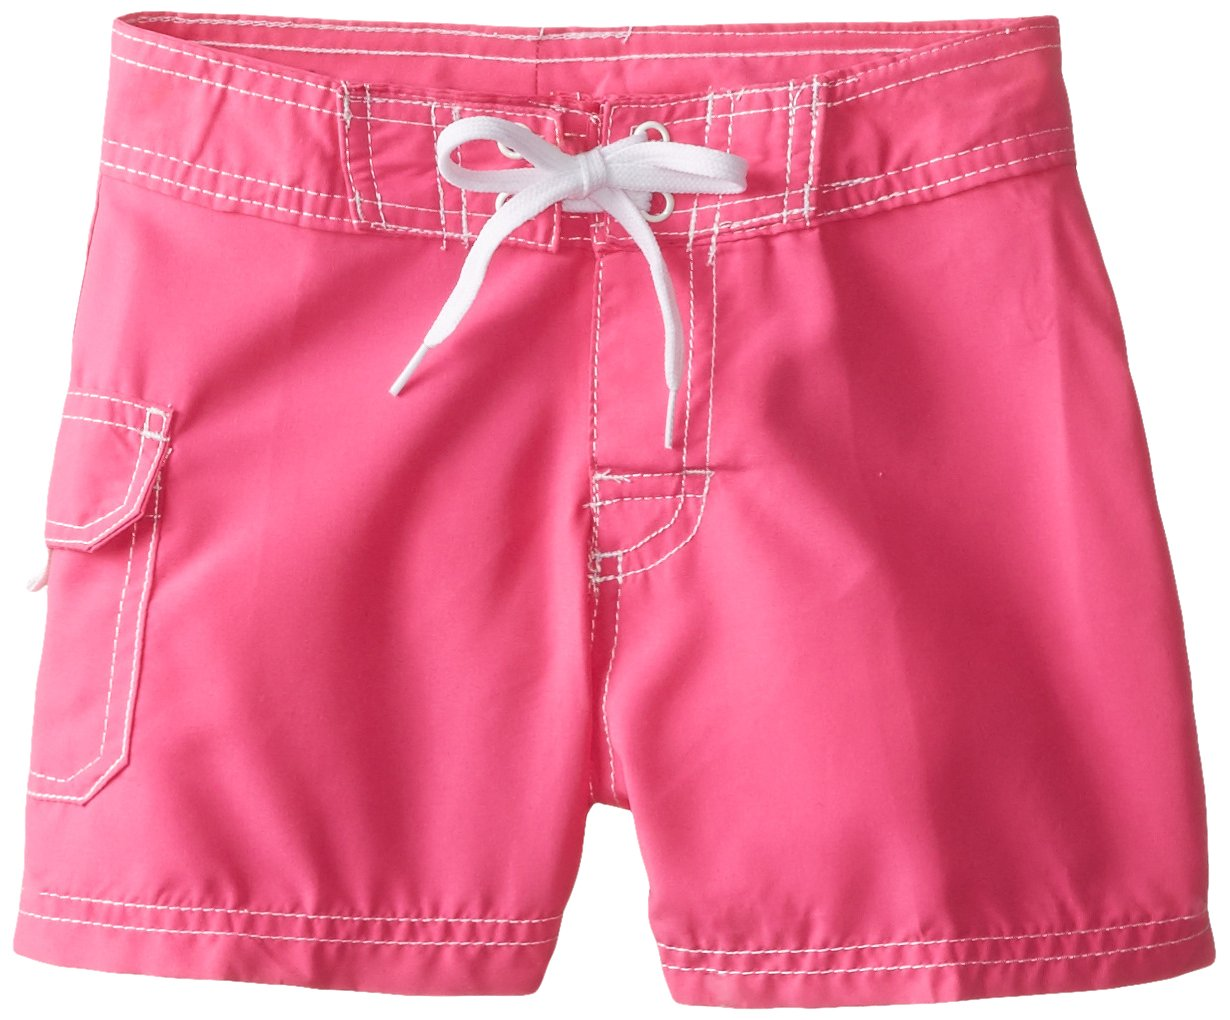 Kanu Surf Little Girls' Sassy UPF 50+ Board Short Kanu Surf Girls 2-6x 1502